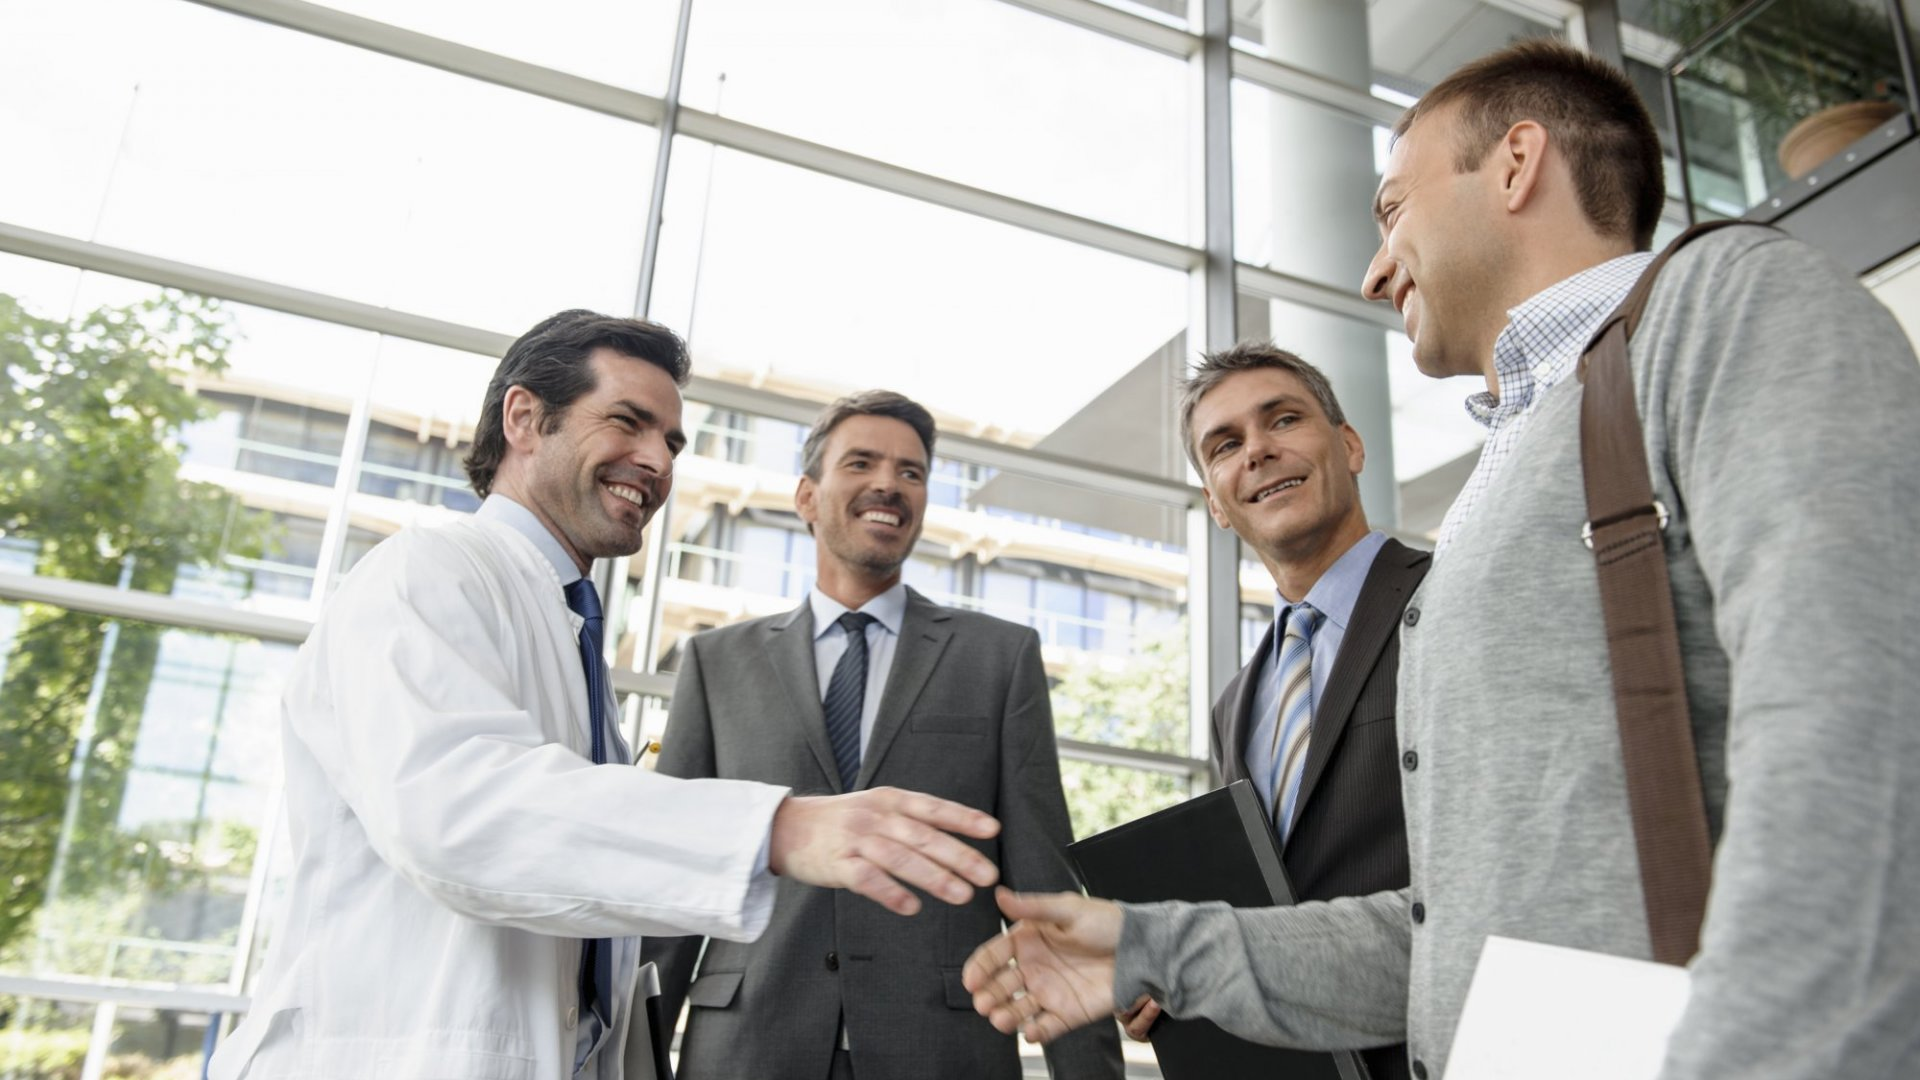 8 Things Smart Salespeople Never, Ever Do